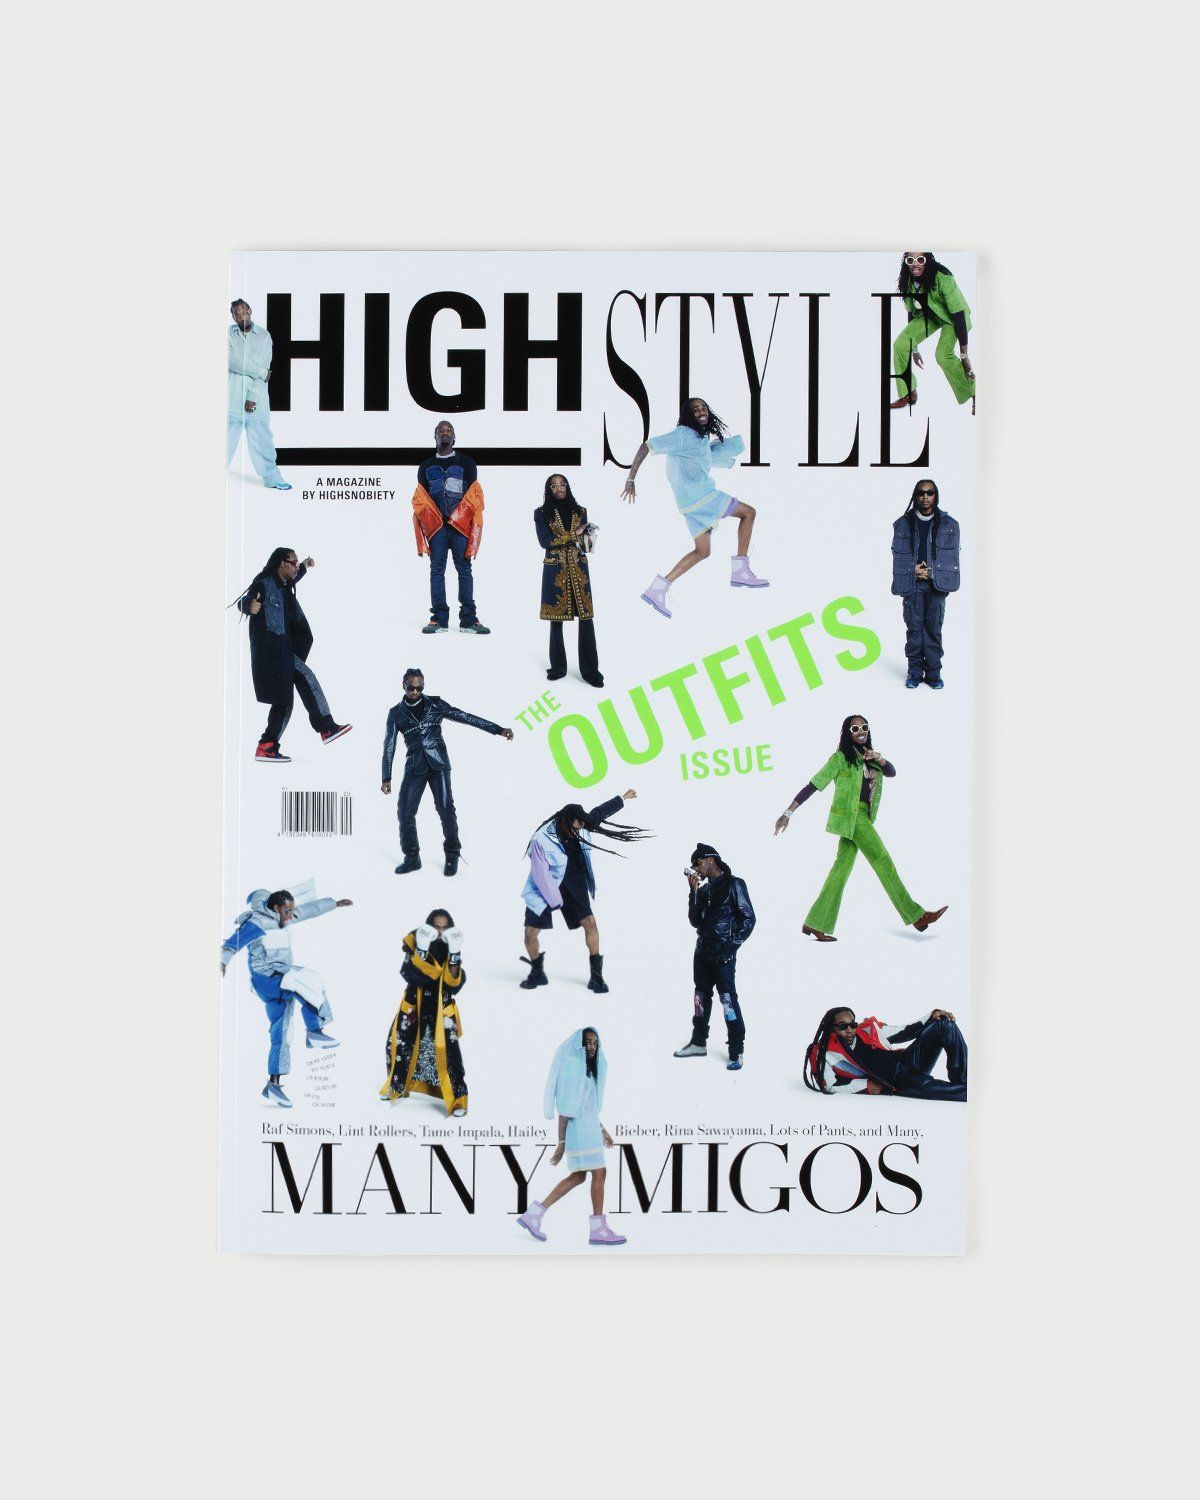 HIGHStyle, A Magazine by Highsnobiety - Image 1